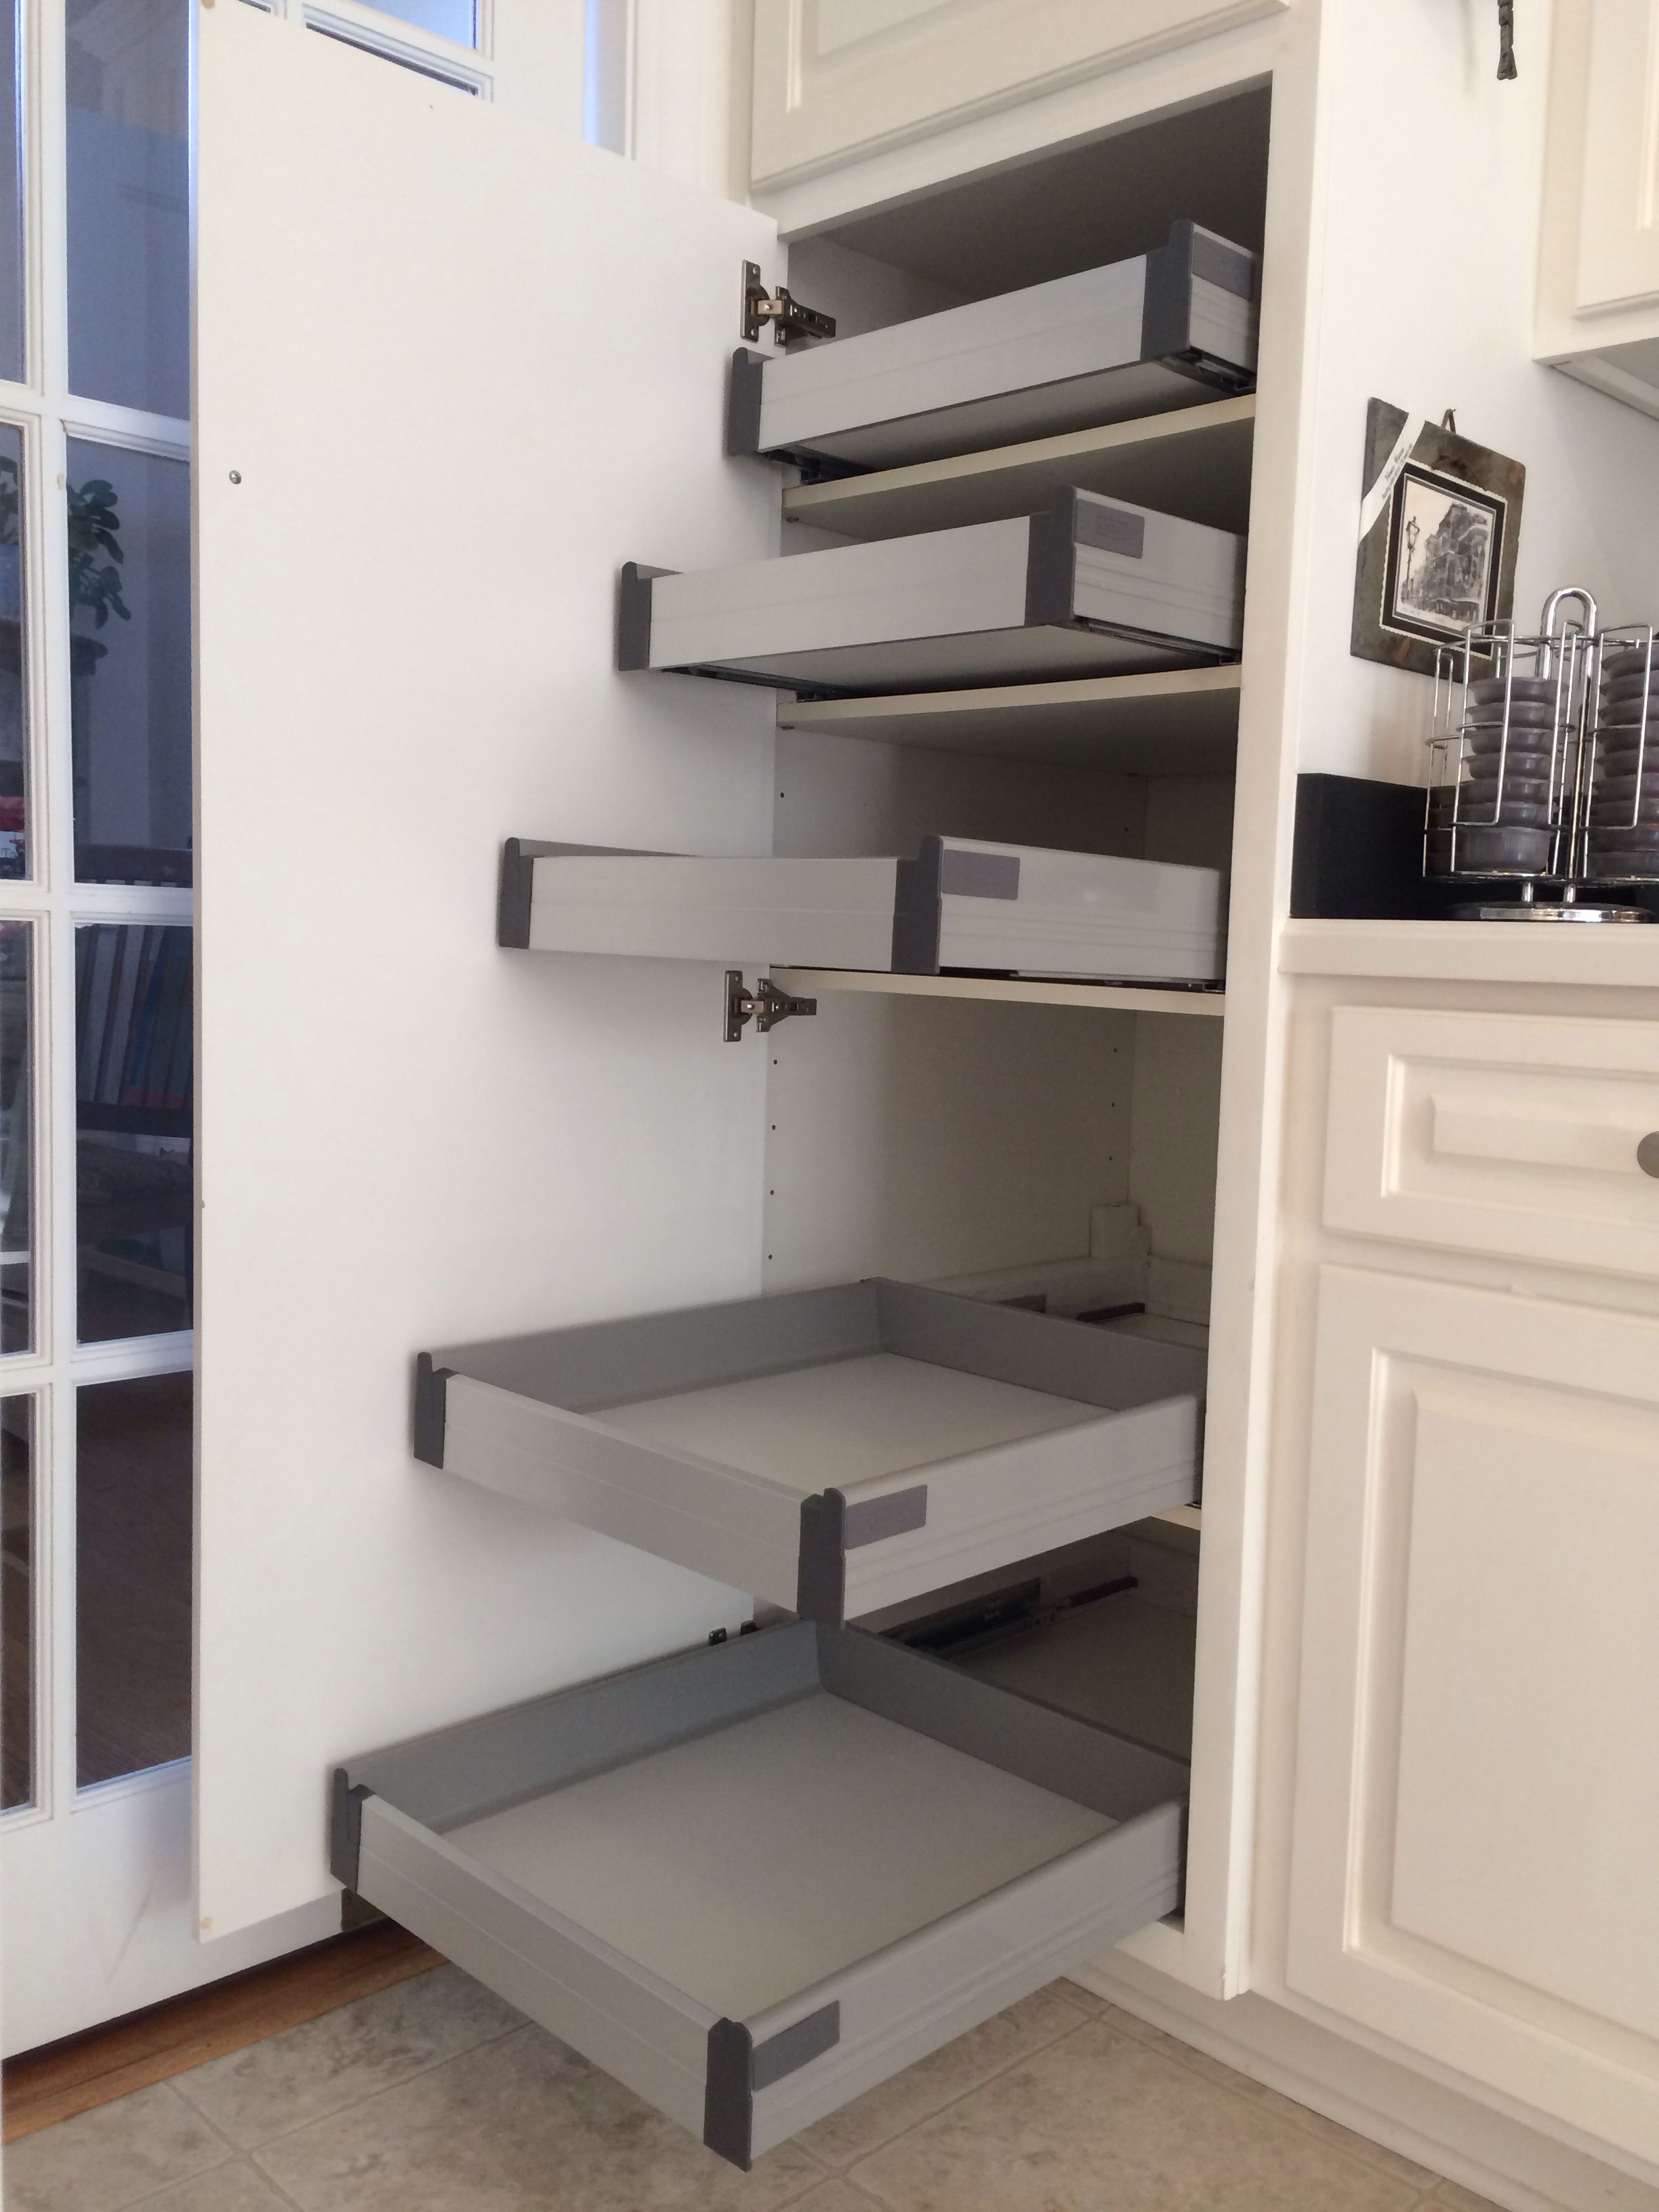 Ikea Rationell Pull-out Shelves (w/ Dampers) Retrofitted To Non-ikea